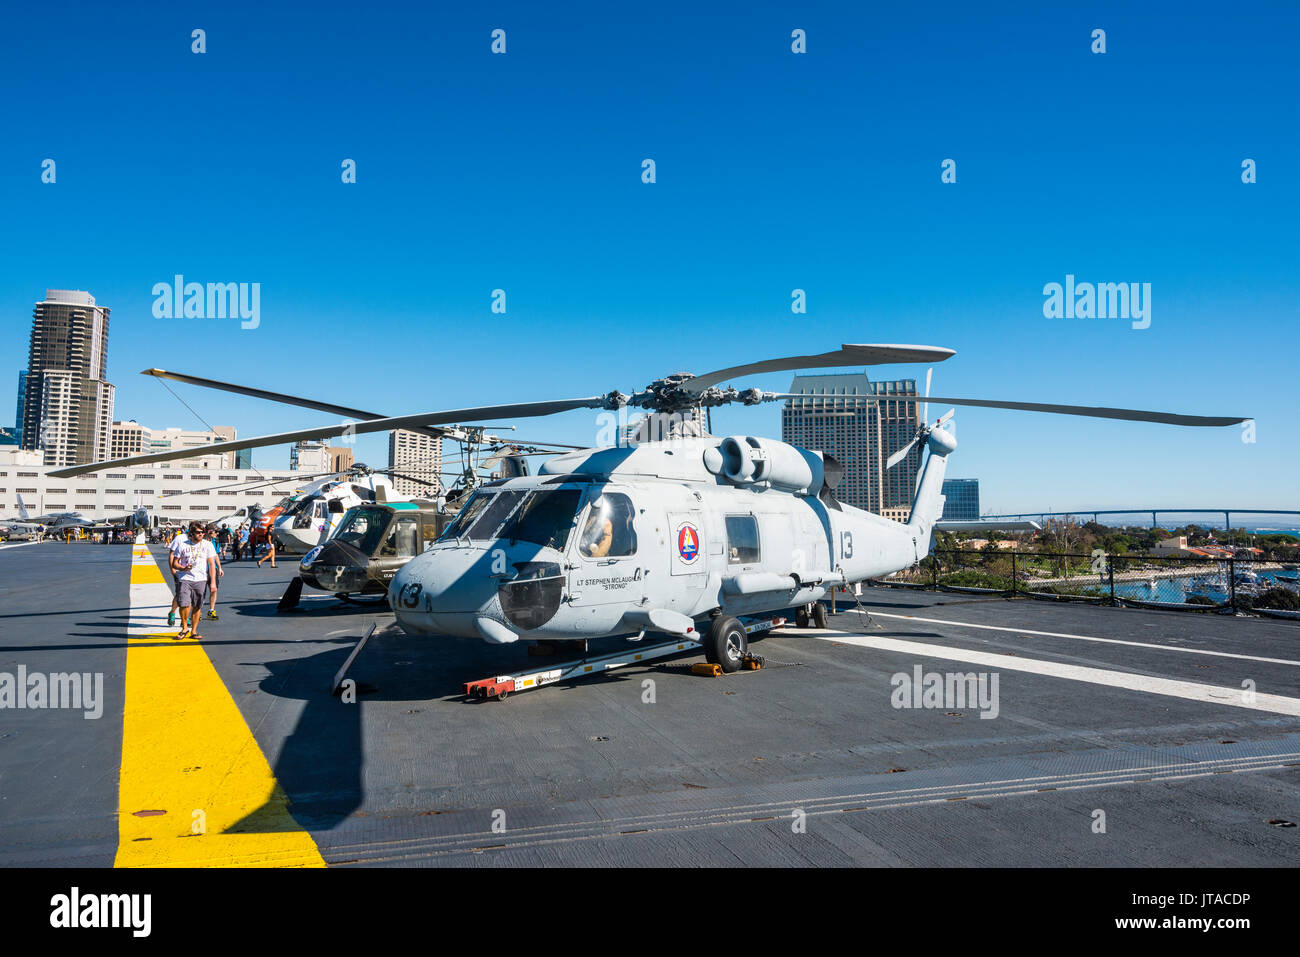 Helicopters on deck of the USS Midway Museum, San Diego, California, United States of America, North America - Stock Image